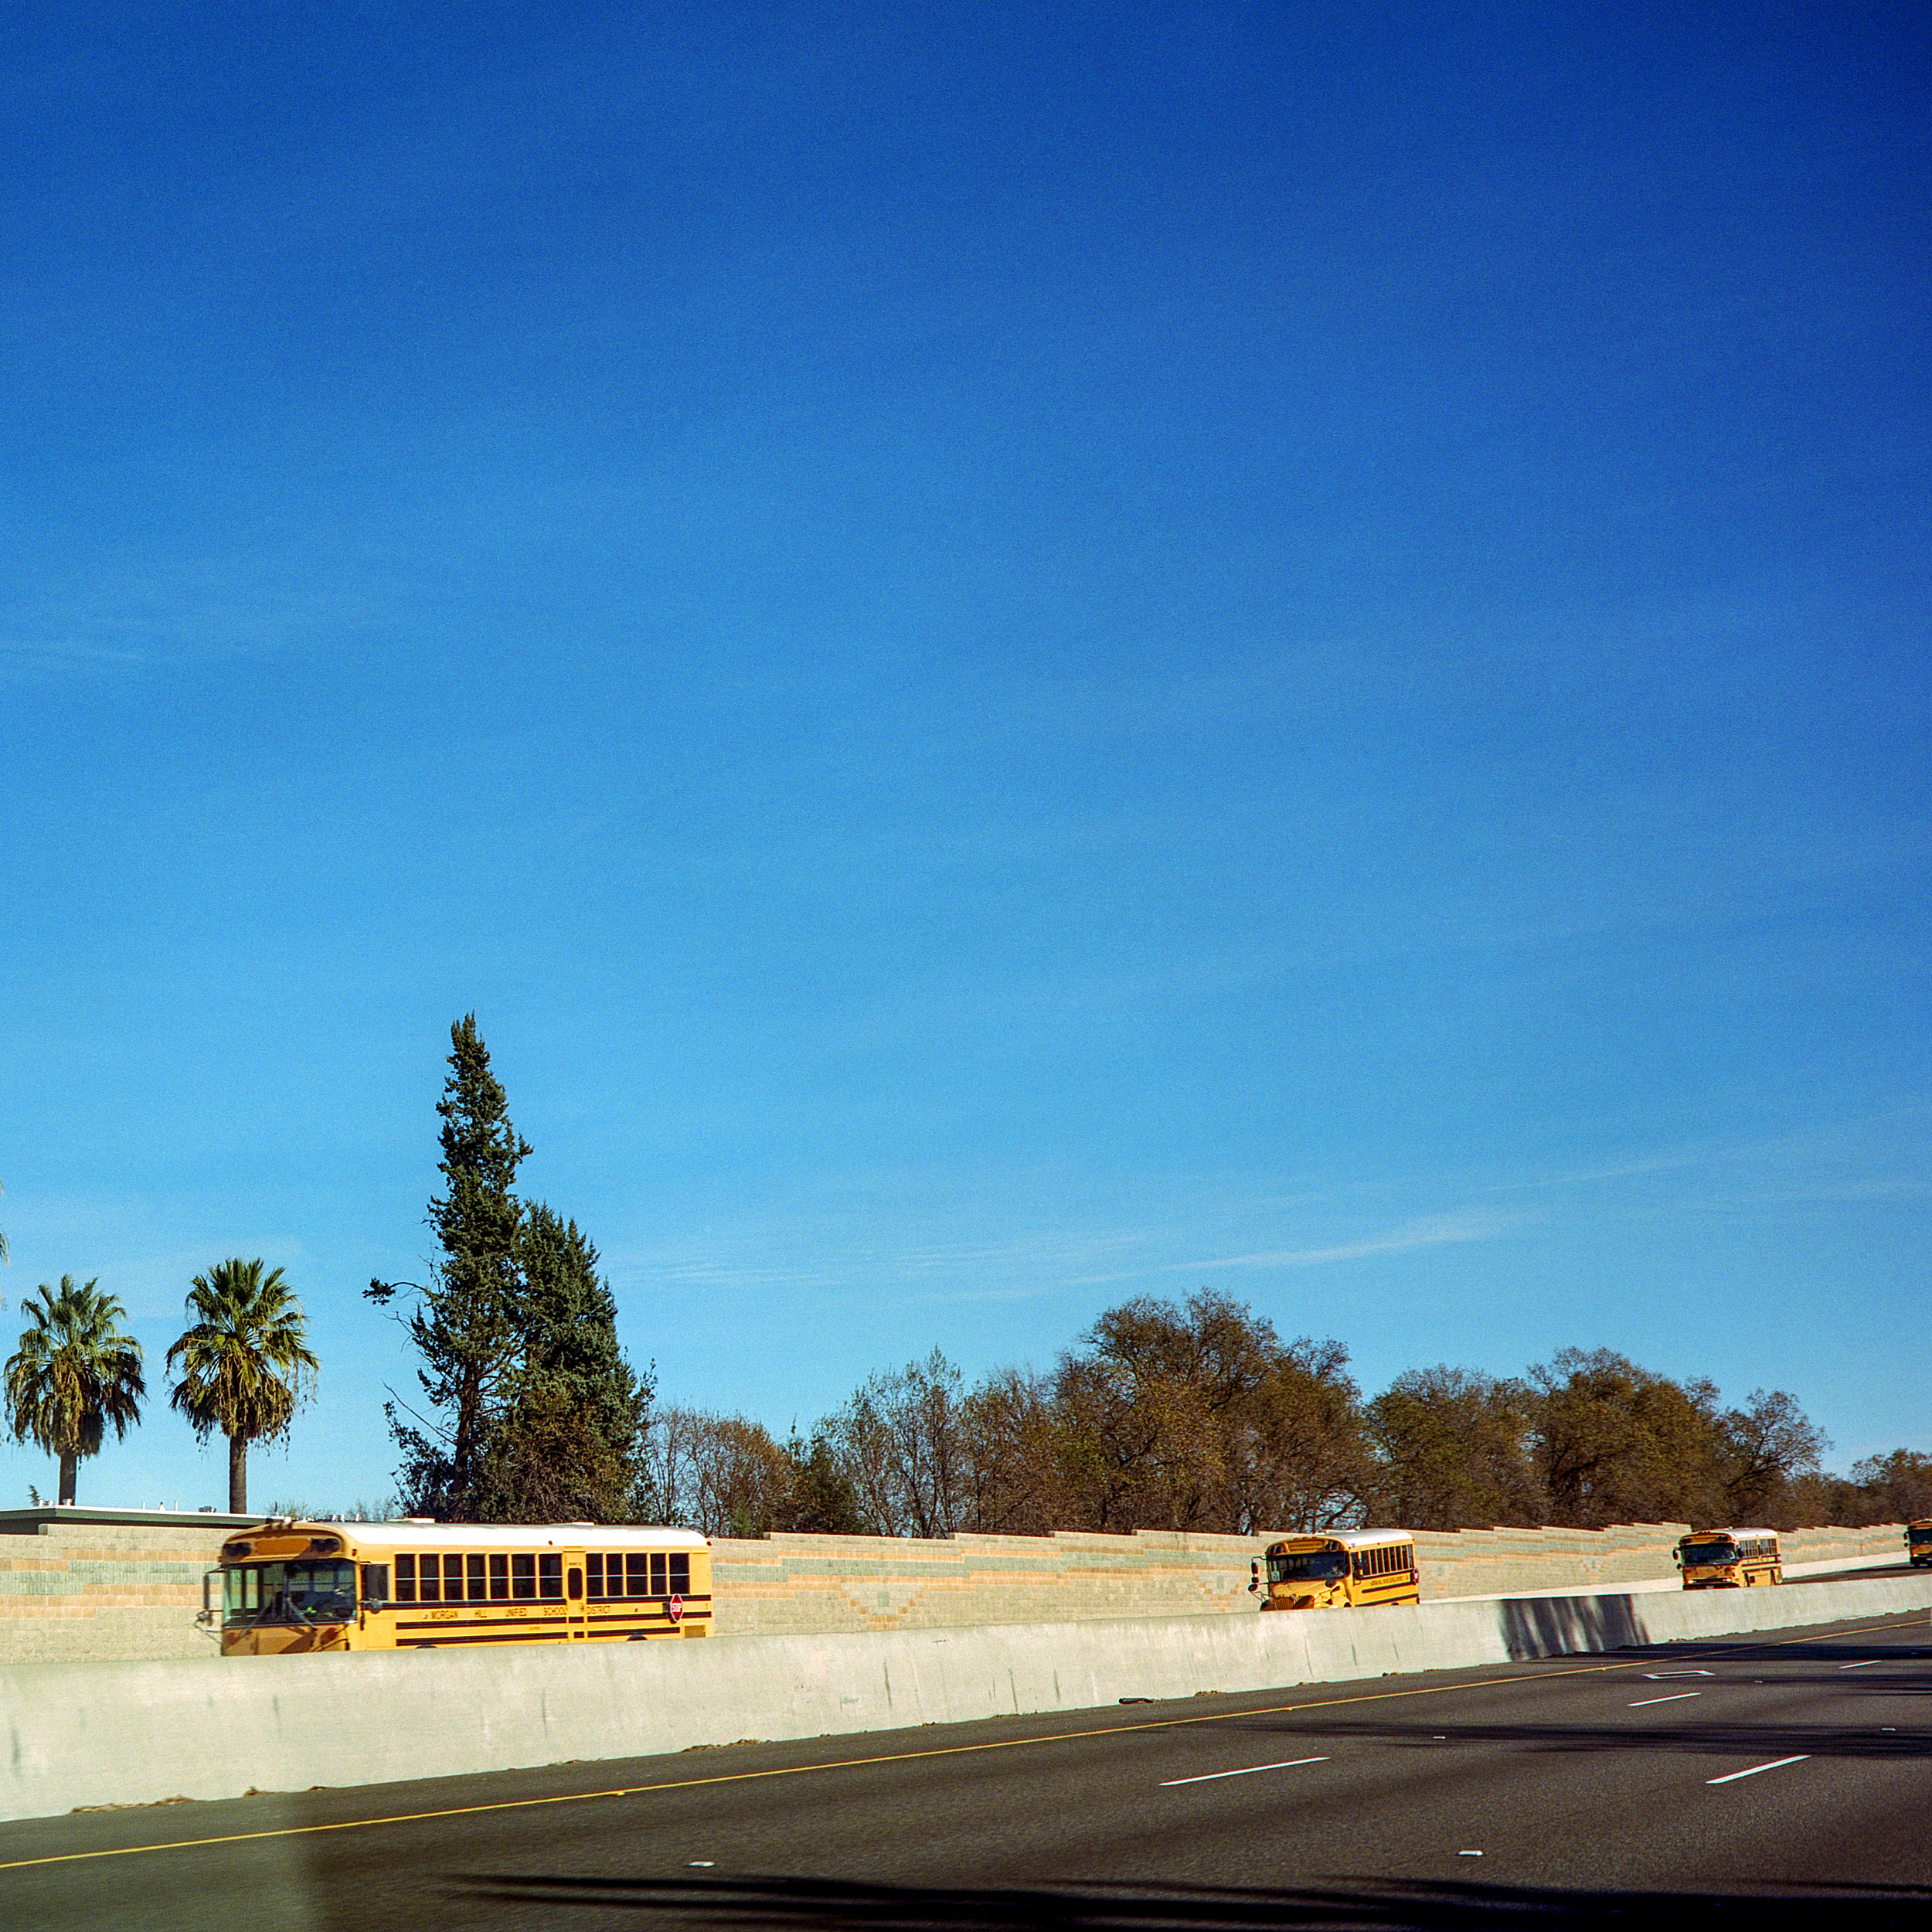 Buses traveling back from the sierras to a school district near San Jose.